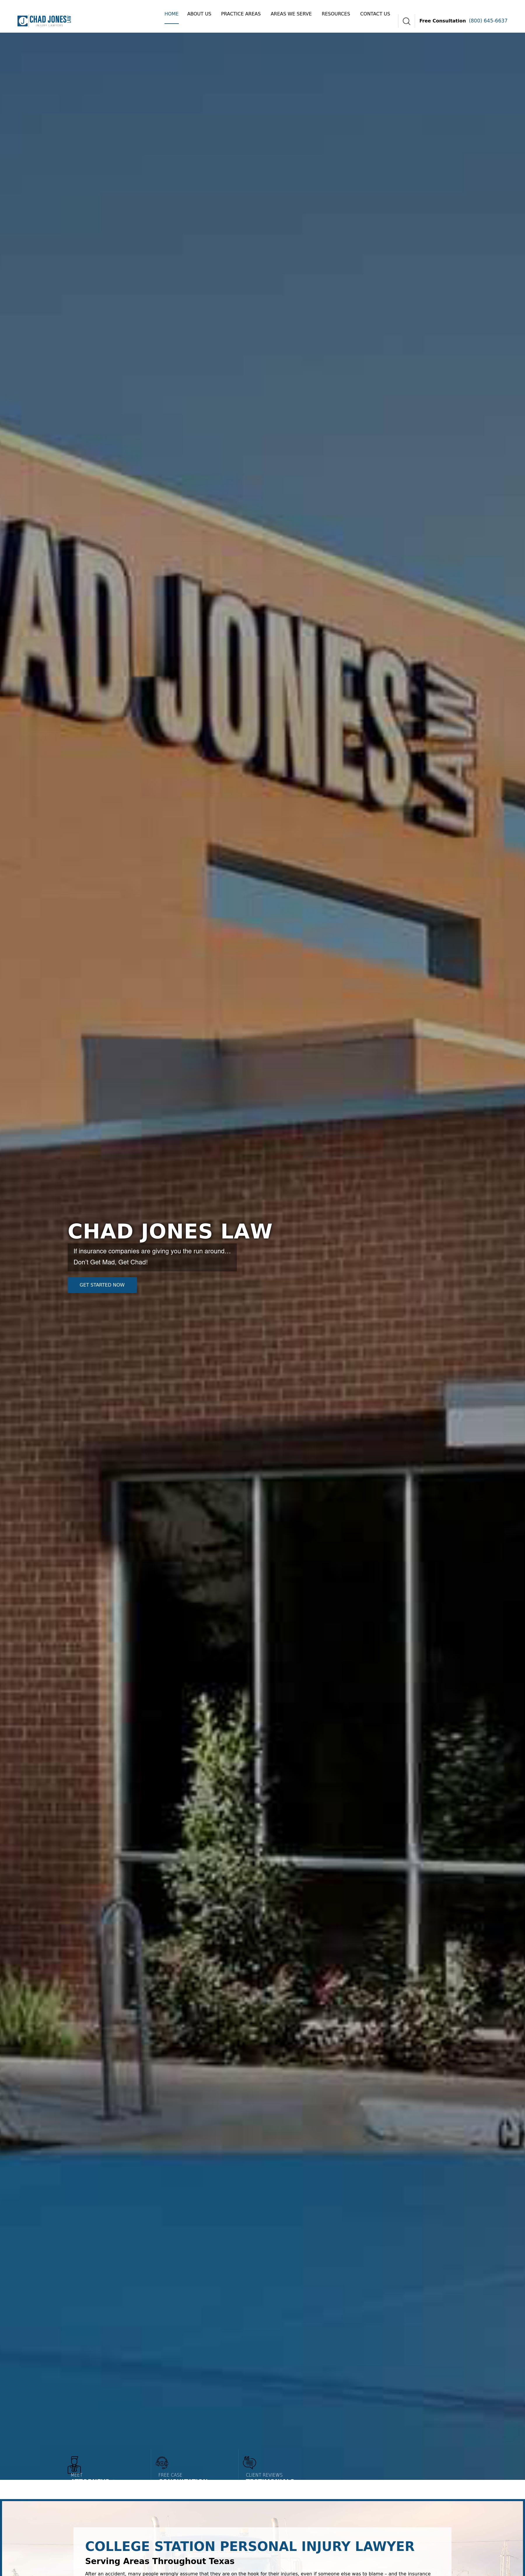 Chad Jones Law - Waco TX Lawyers